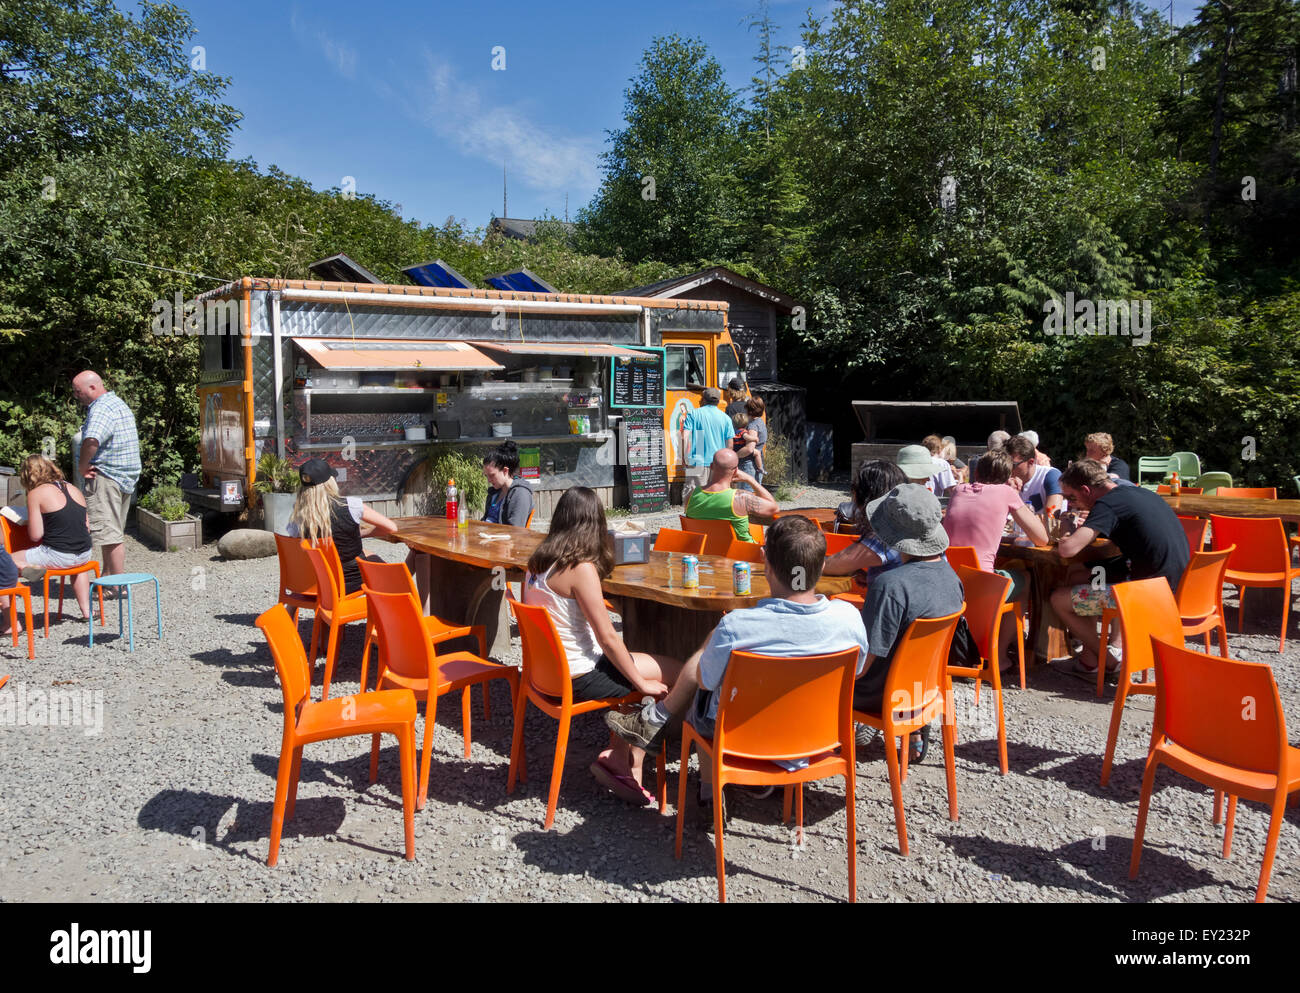 Customers dining outdoors at the Tacofino food truck, a popular takeout restaurant in Tofino, BC. - Stock Image